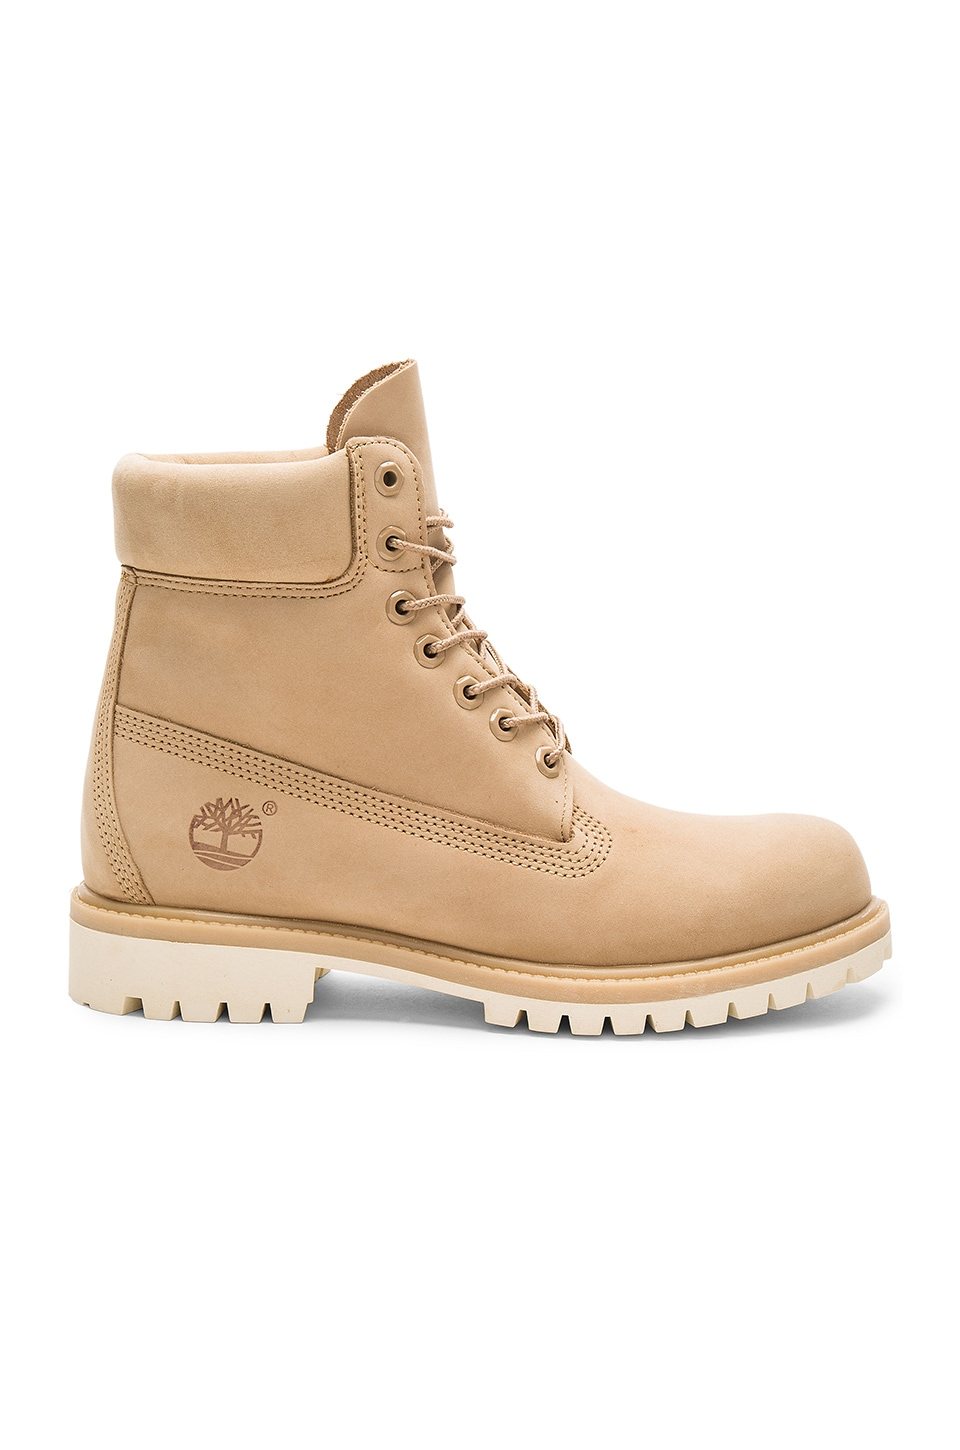 "6 "" Premium Boots by Timberland"